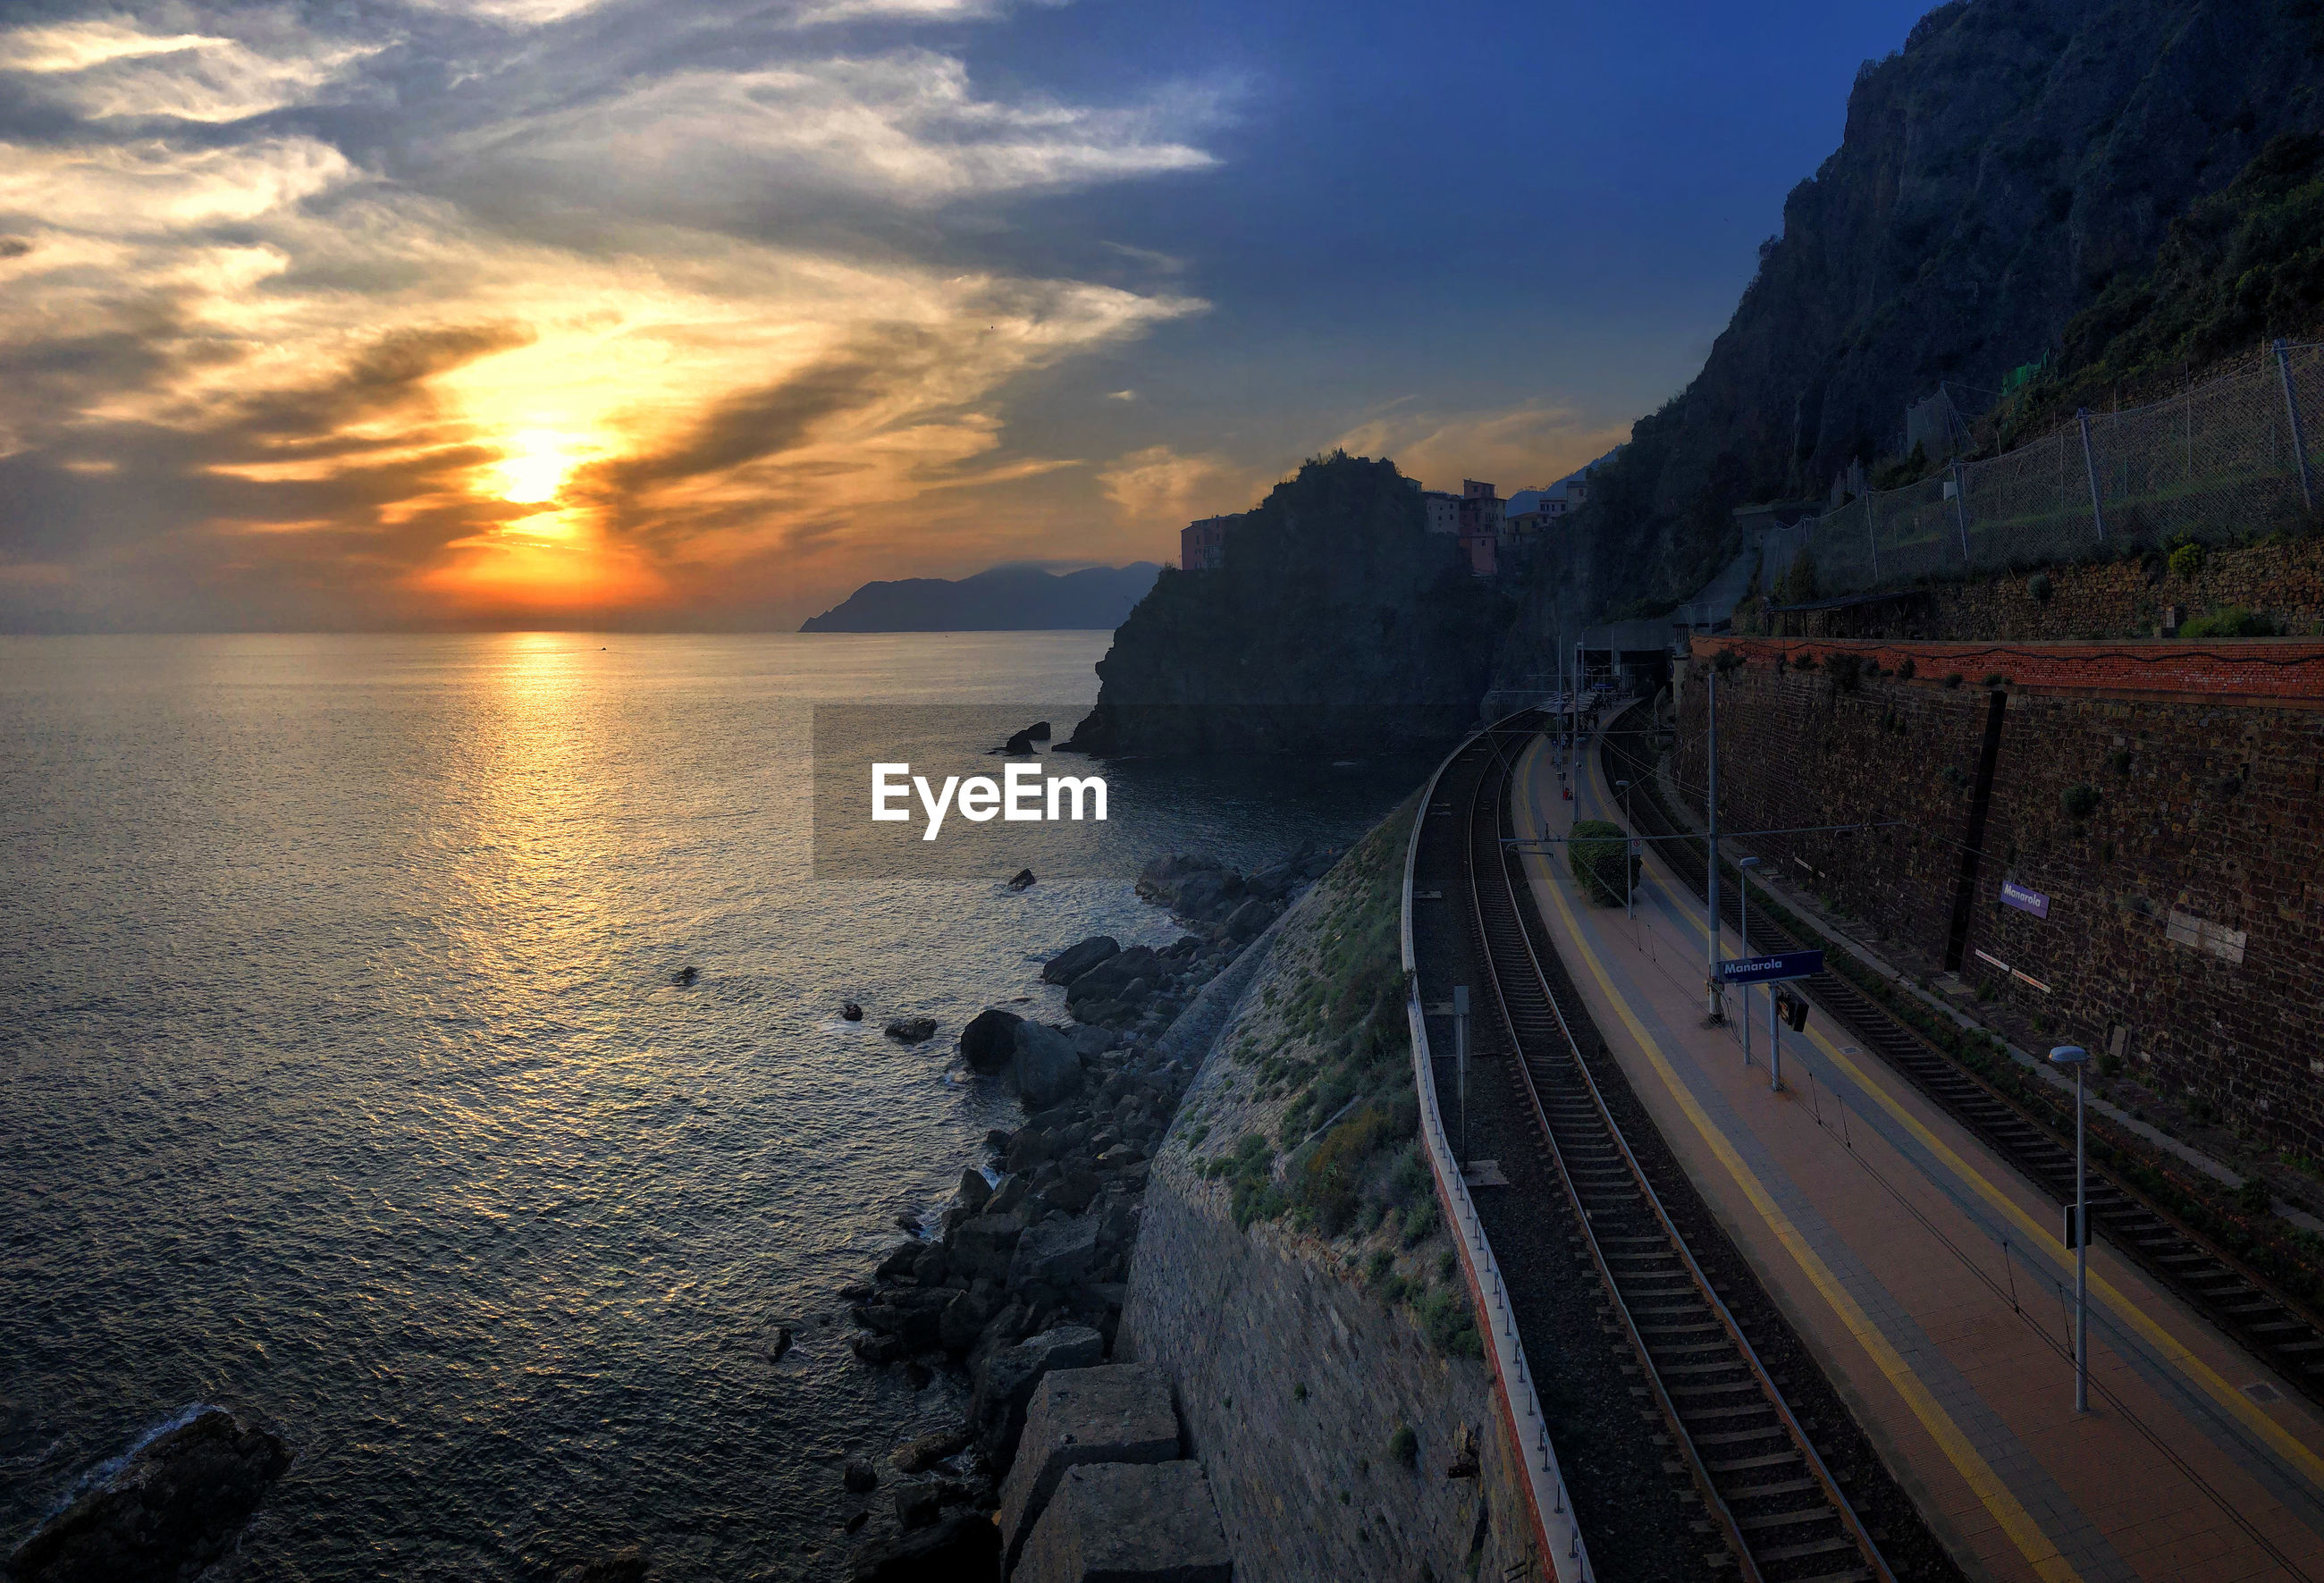 PANORAMIC SHOT OF SEA AGAINST SKY DURING SUNSET